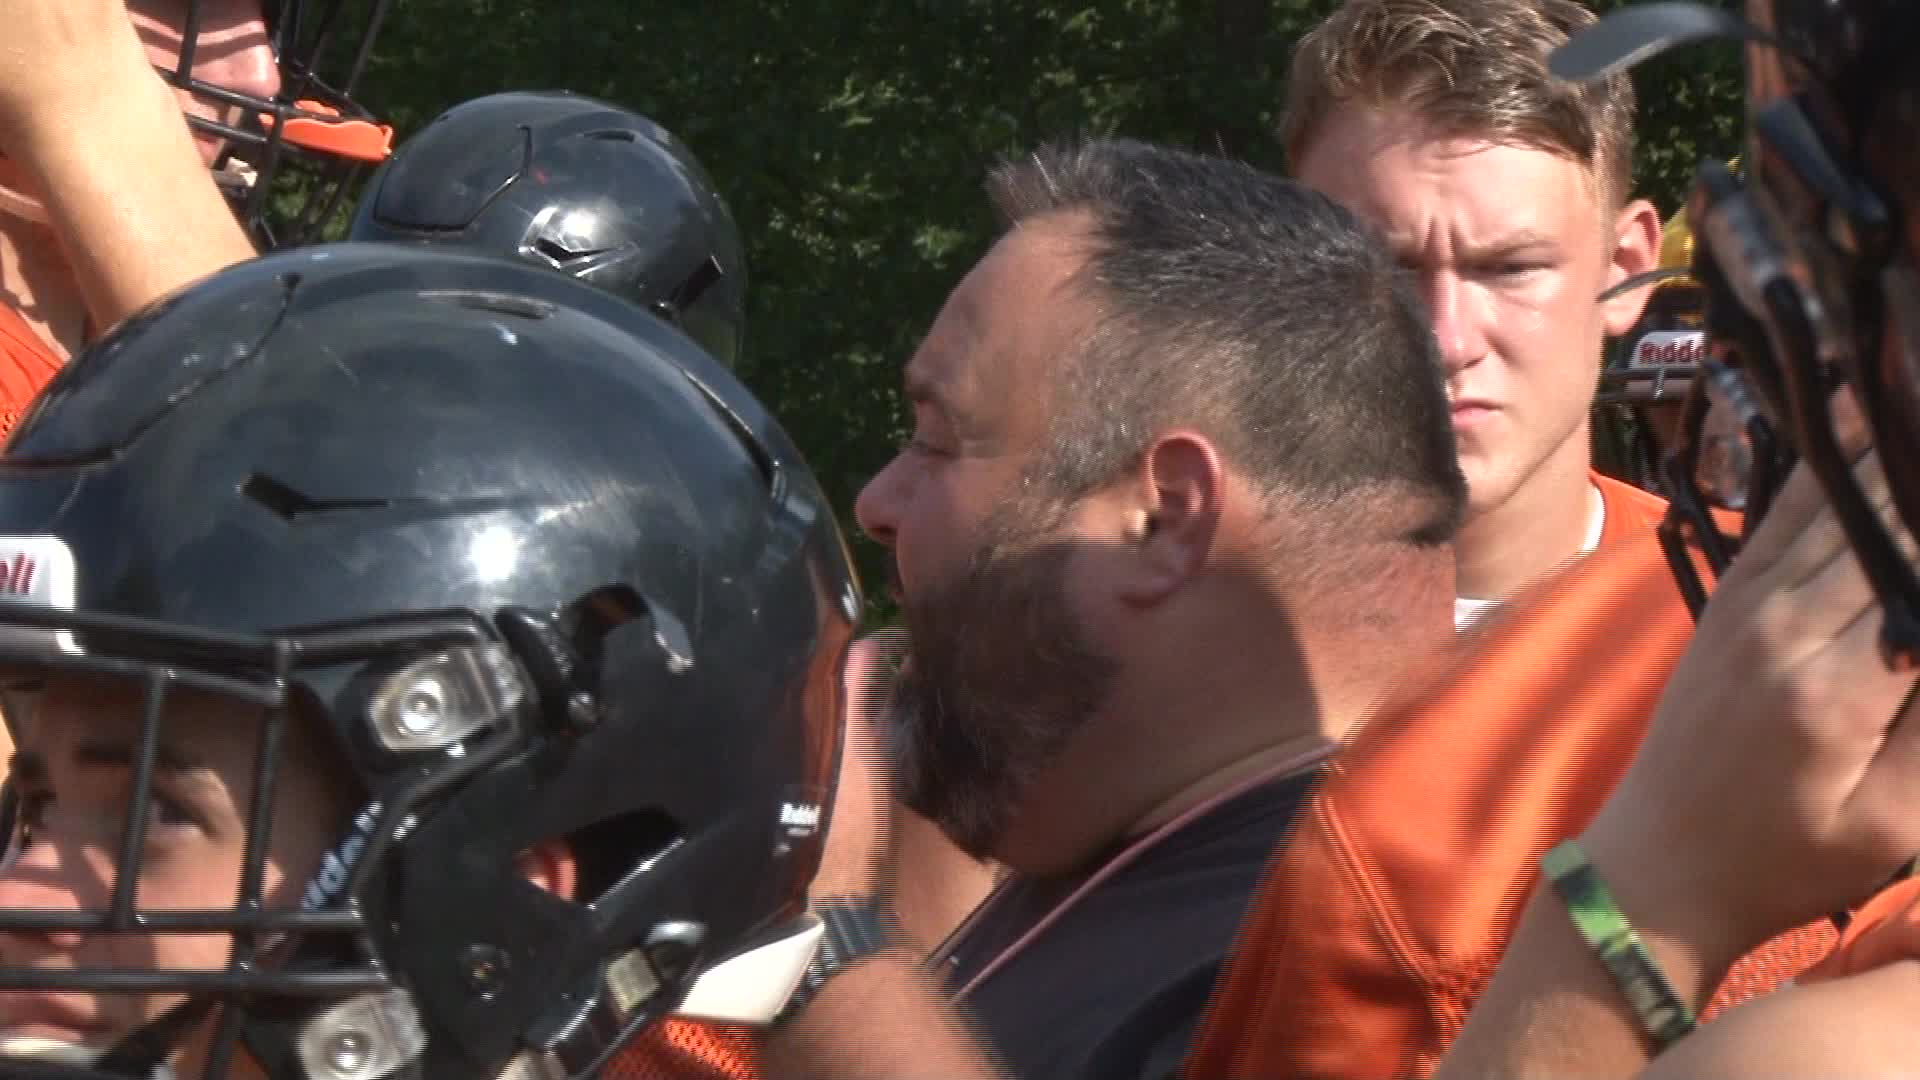 Linsly Cadets 2019 High School Football Season Preview